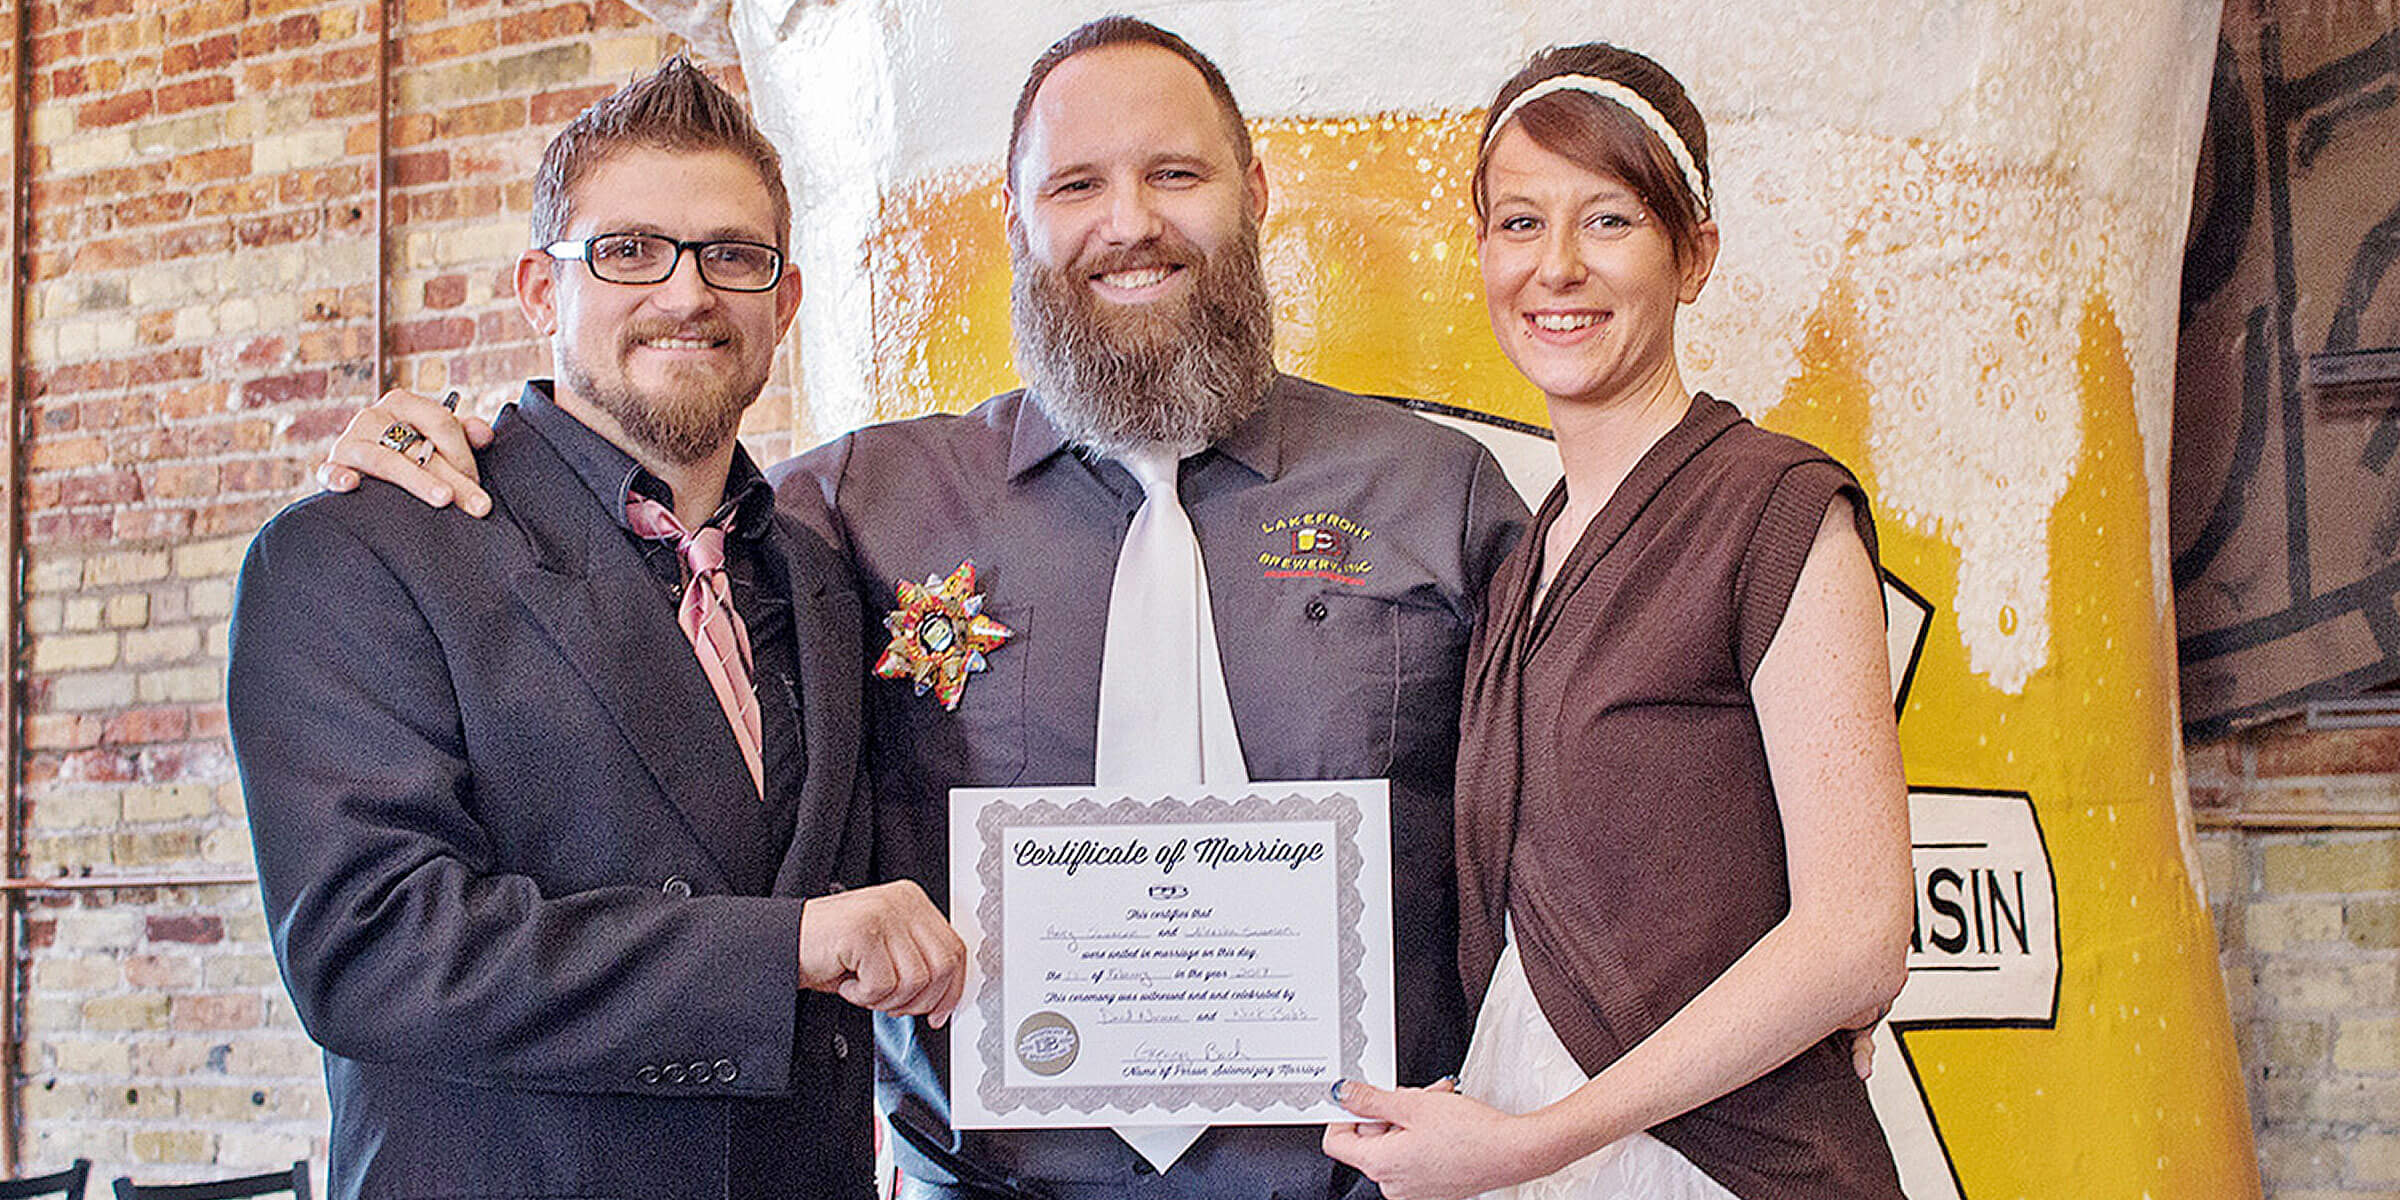 With a proper marriage license, Lakefront Brewery is offering couples with a lovely, quaint, yet professional ceremony for free on Valentine's Day.